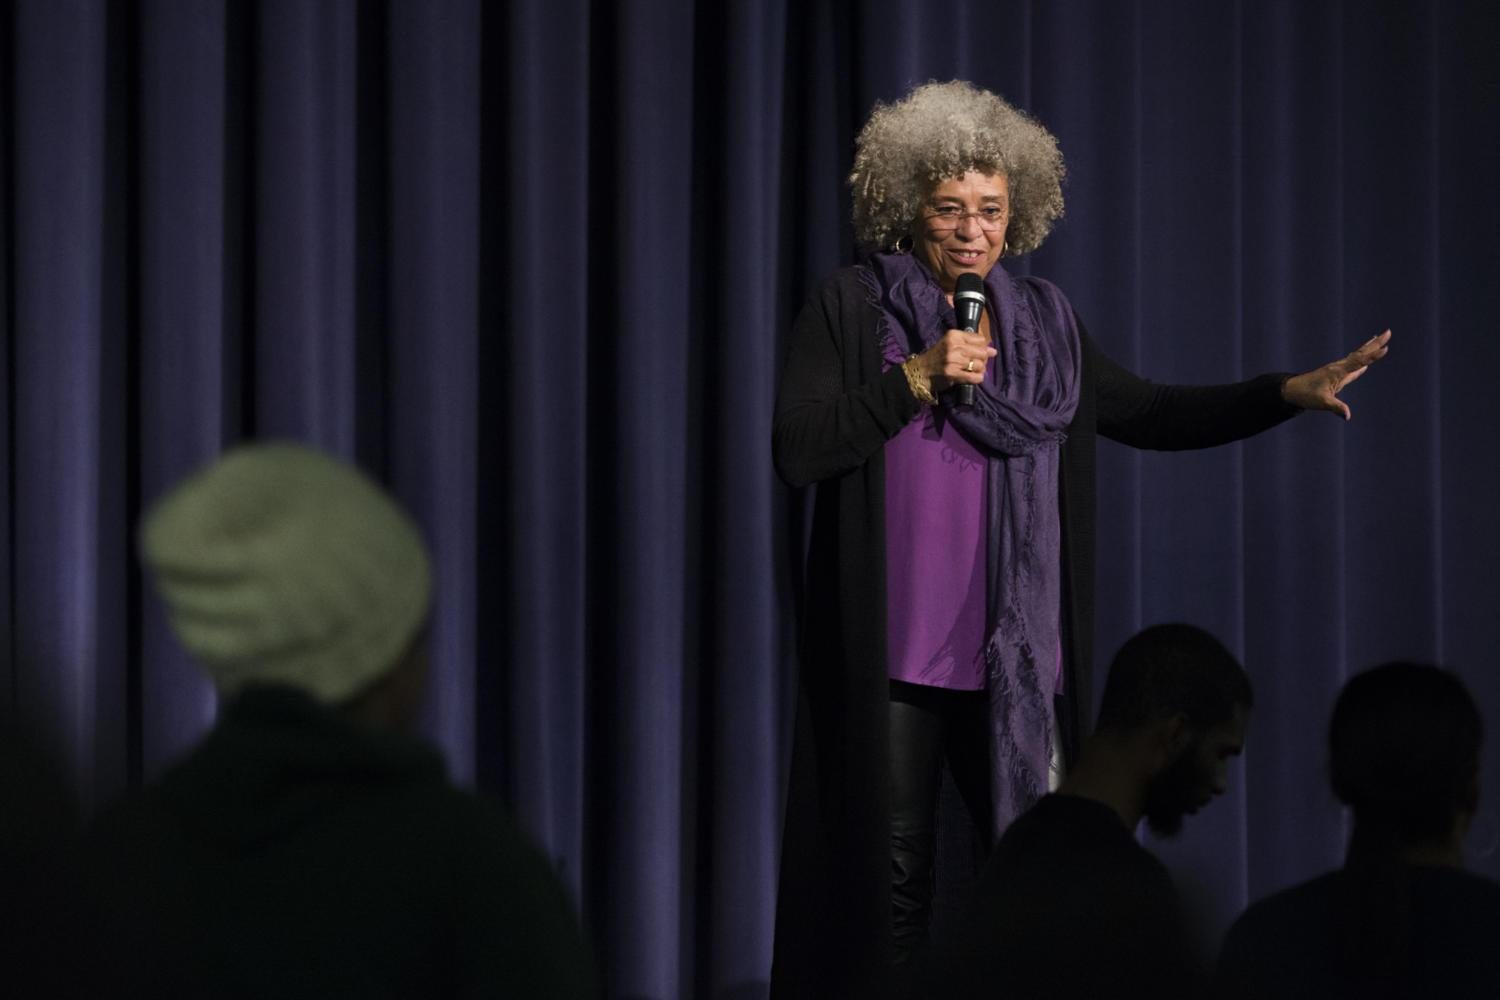 Activist and author Angela Davis answers students' questions after speaking to several hundred people in Alumni Hall Thursday night. (Photo by John Hamilton | Managing Editor)